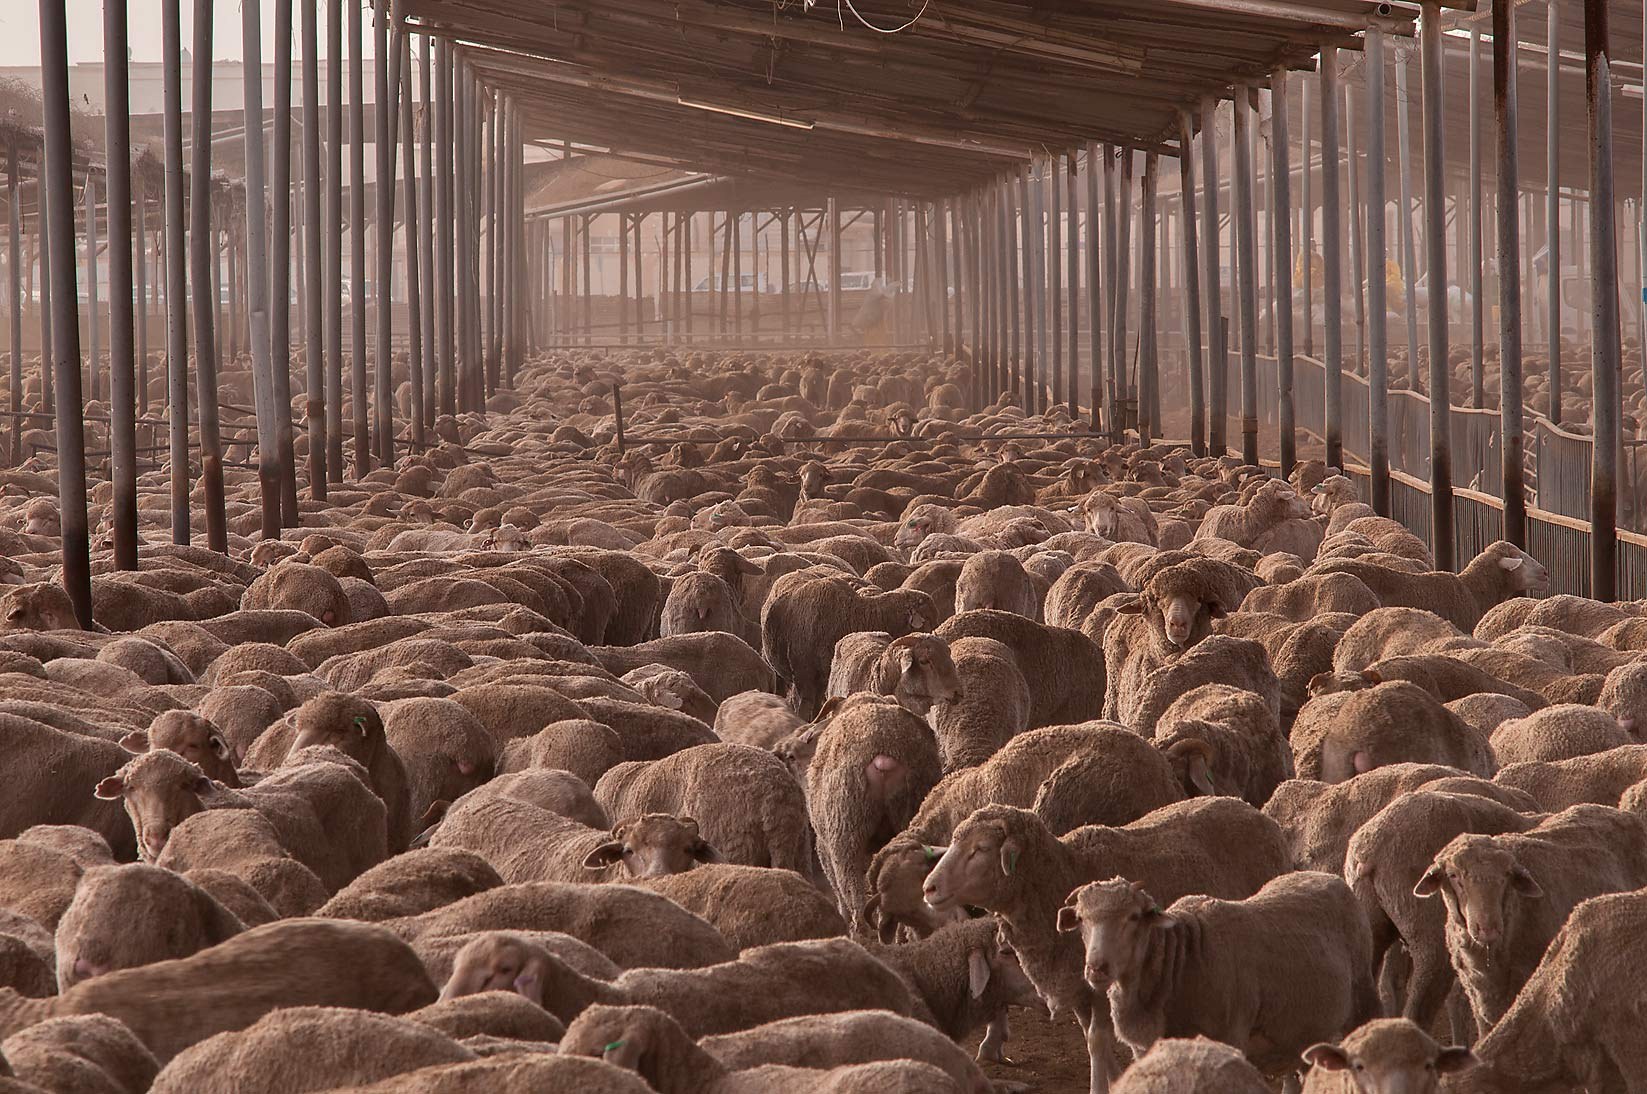 Australian sheep crammed into a dusty feedlot of...Abu Hamour area. Doha, Qatar